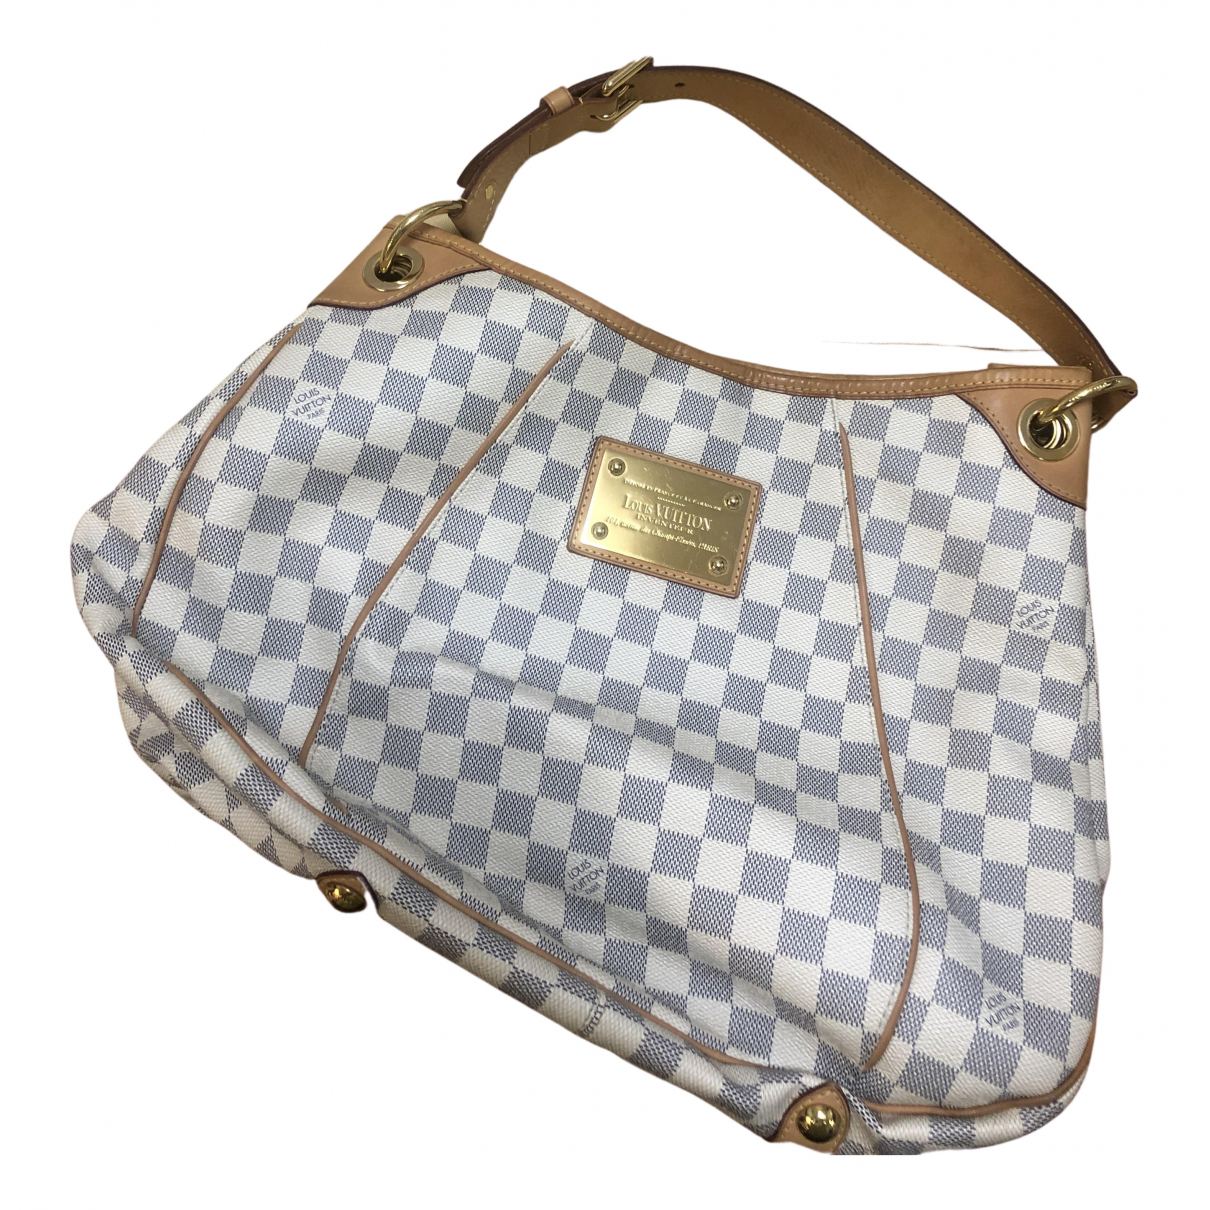 Louis Vuitton Galliera White Cloth handbag for Women N